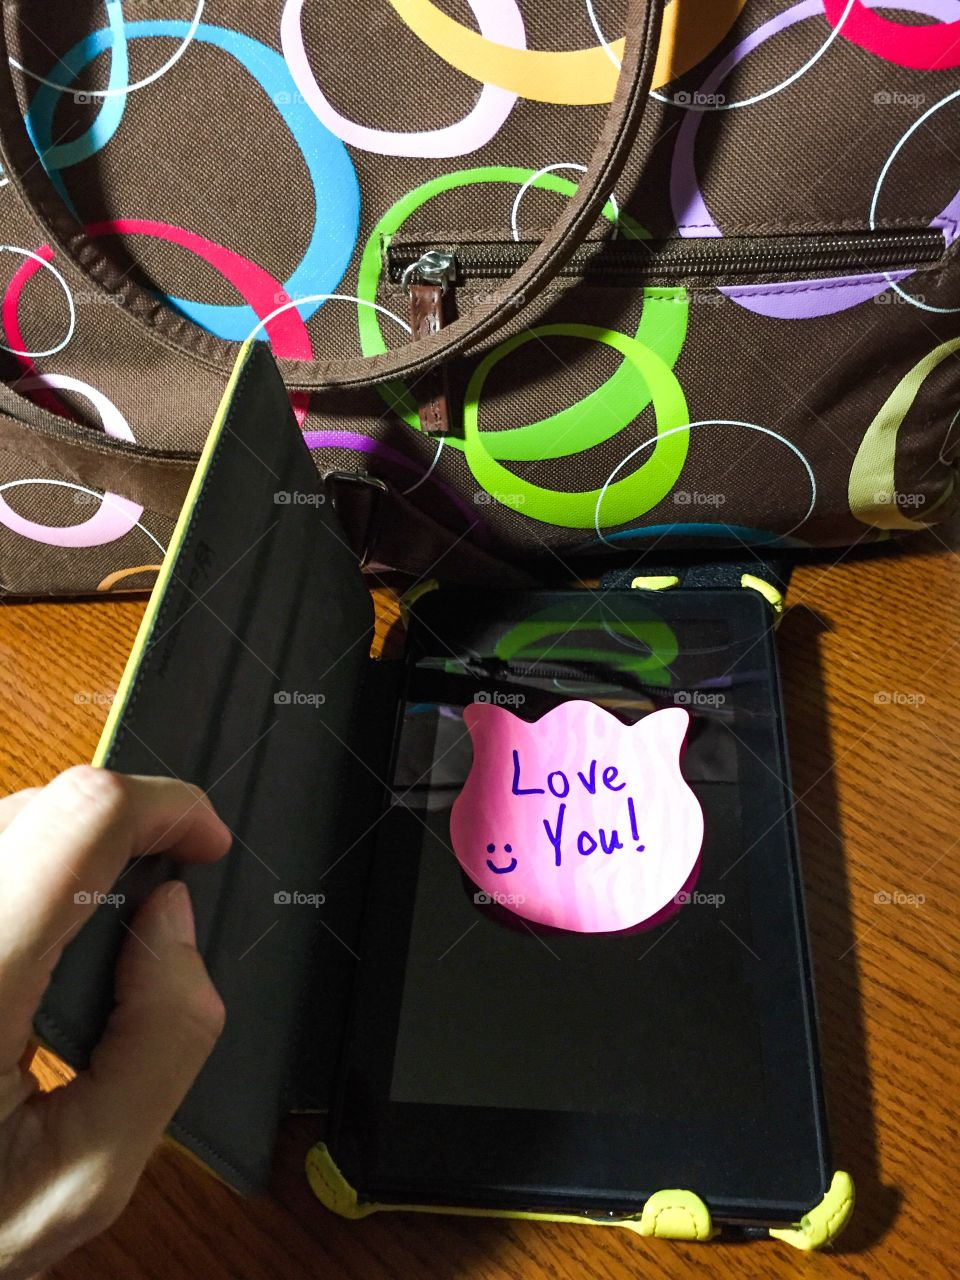 Love message on mobile screen